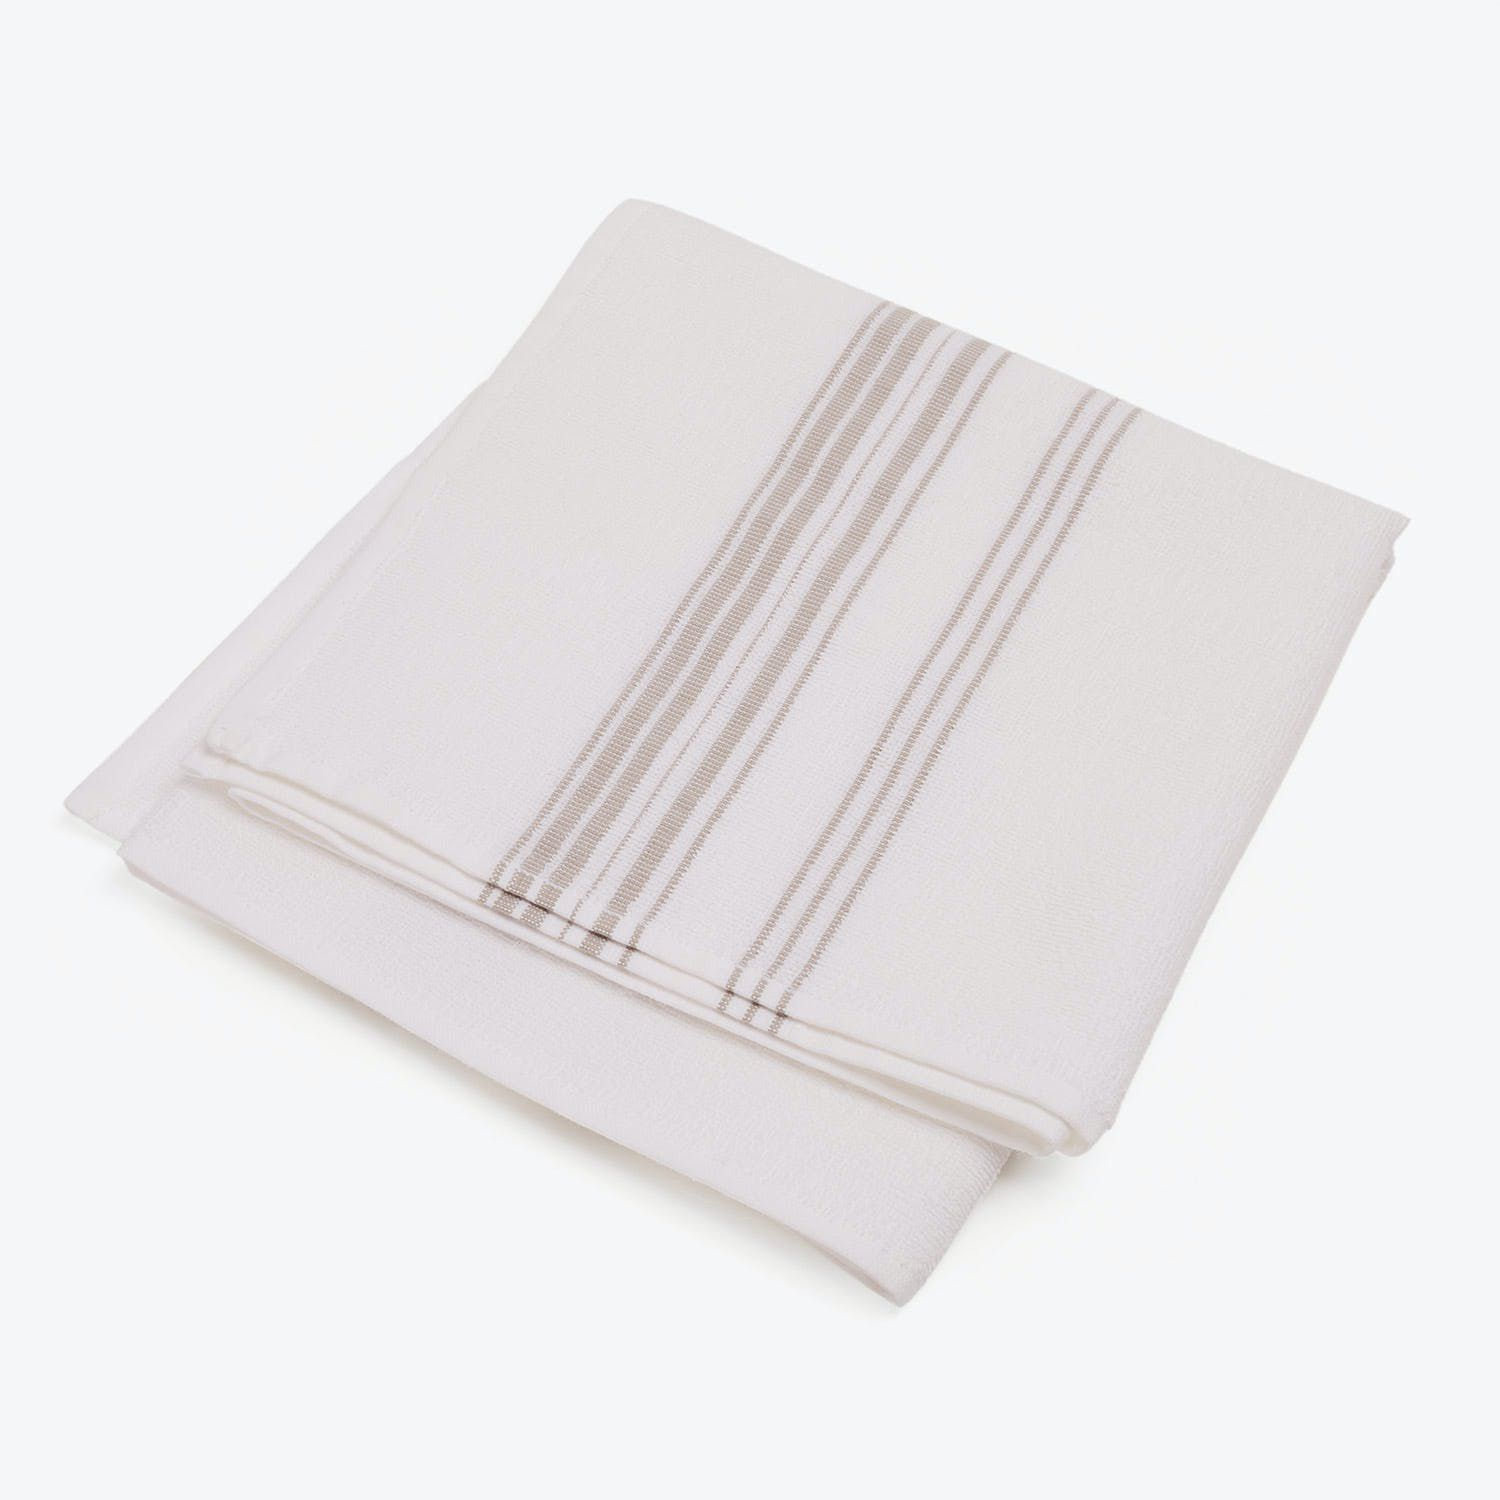 White and grey striped hand towel